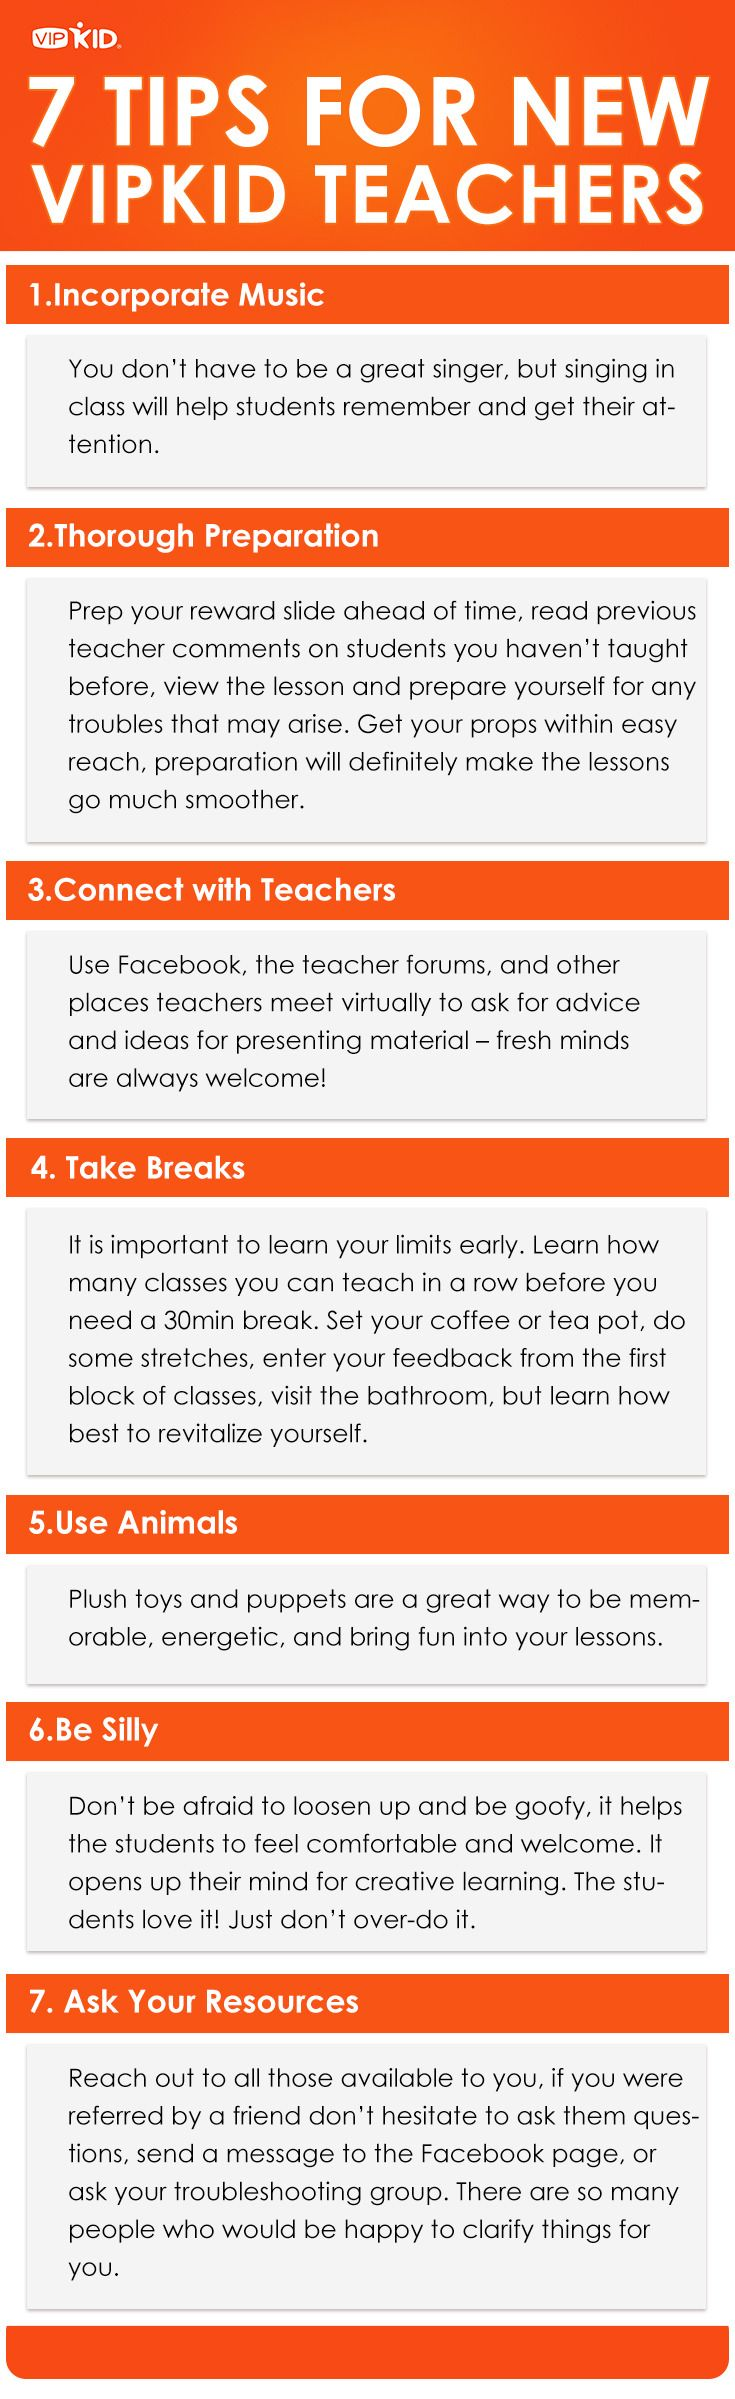 If you are a new VIPKID teacher or hoping to be one here